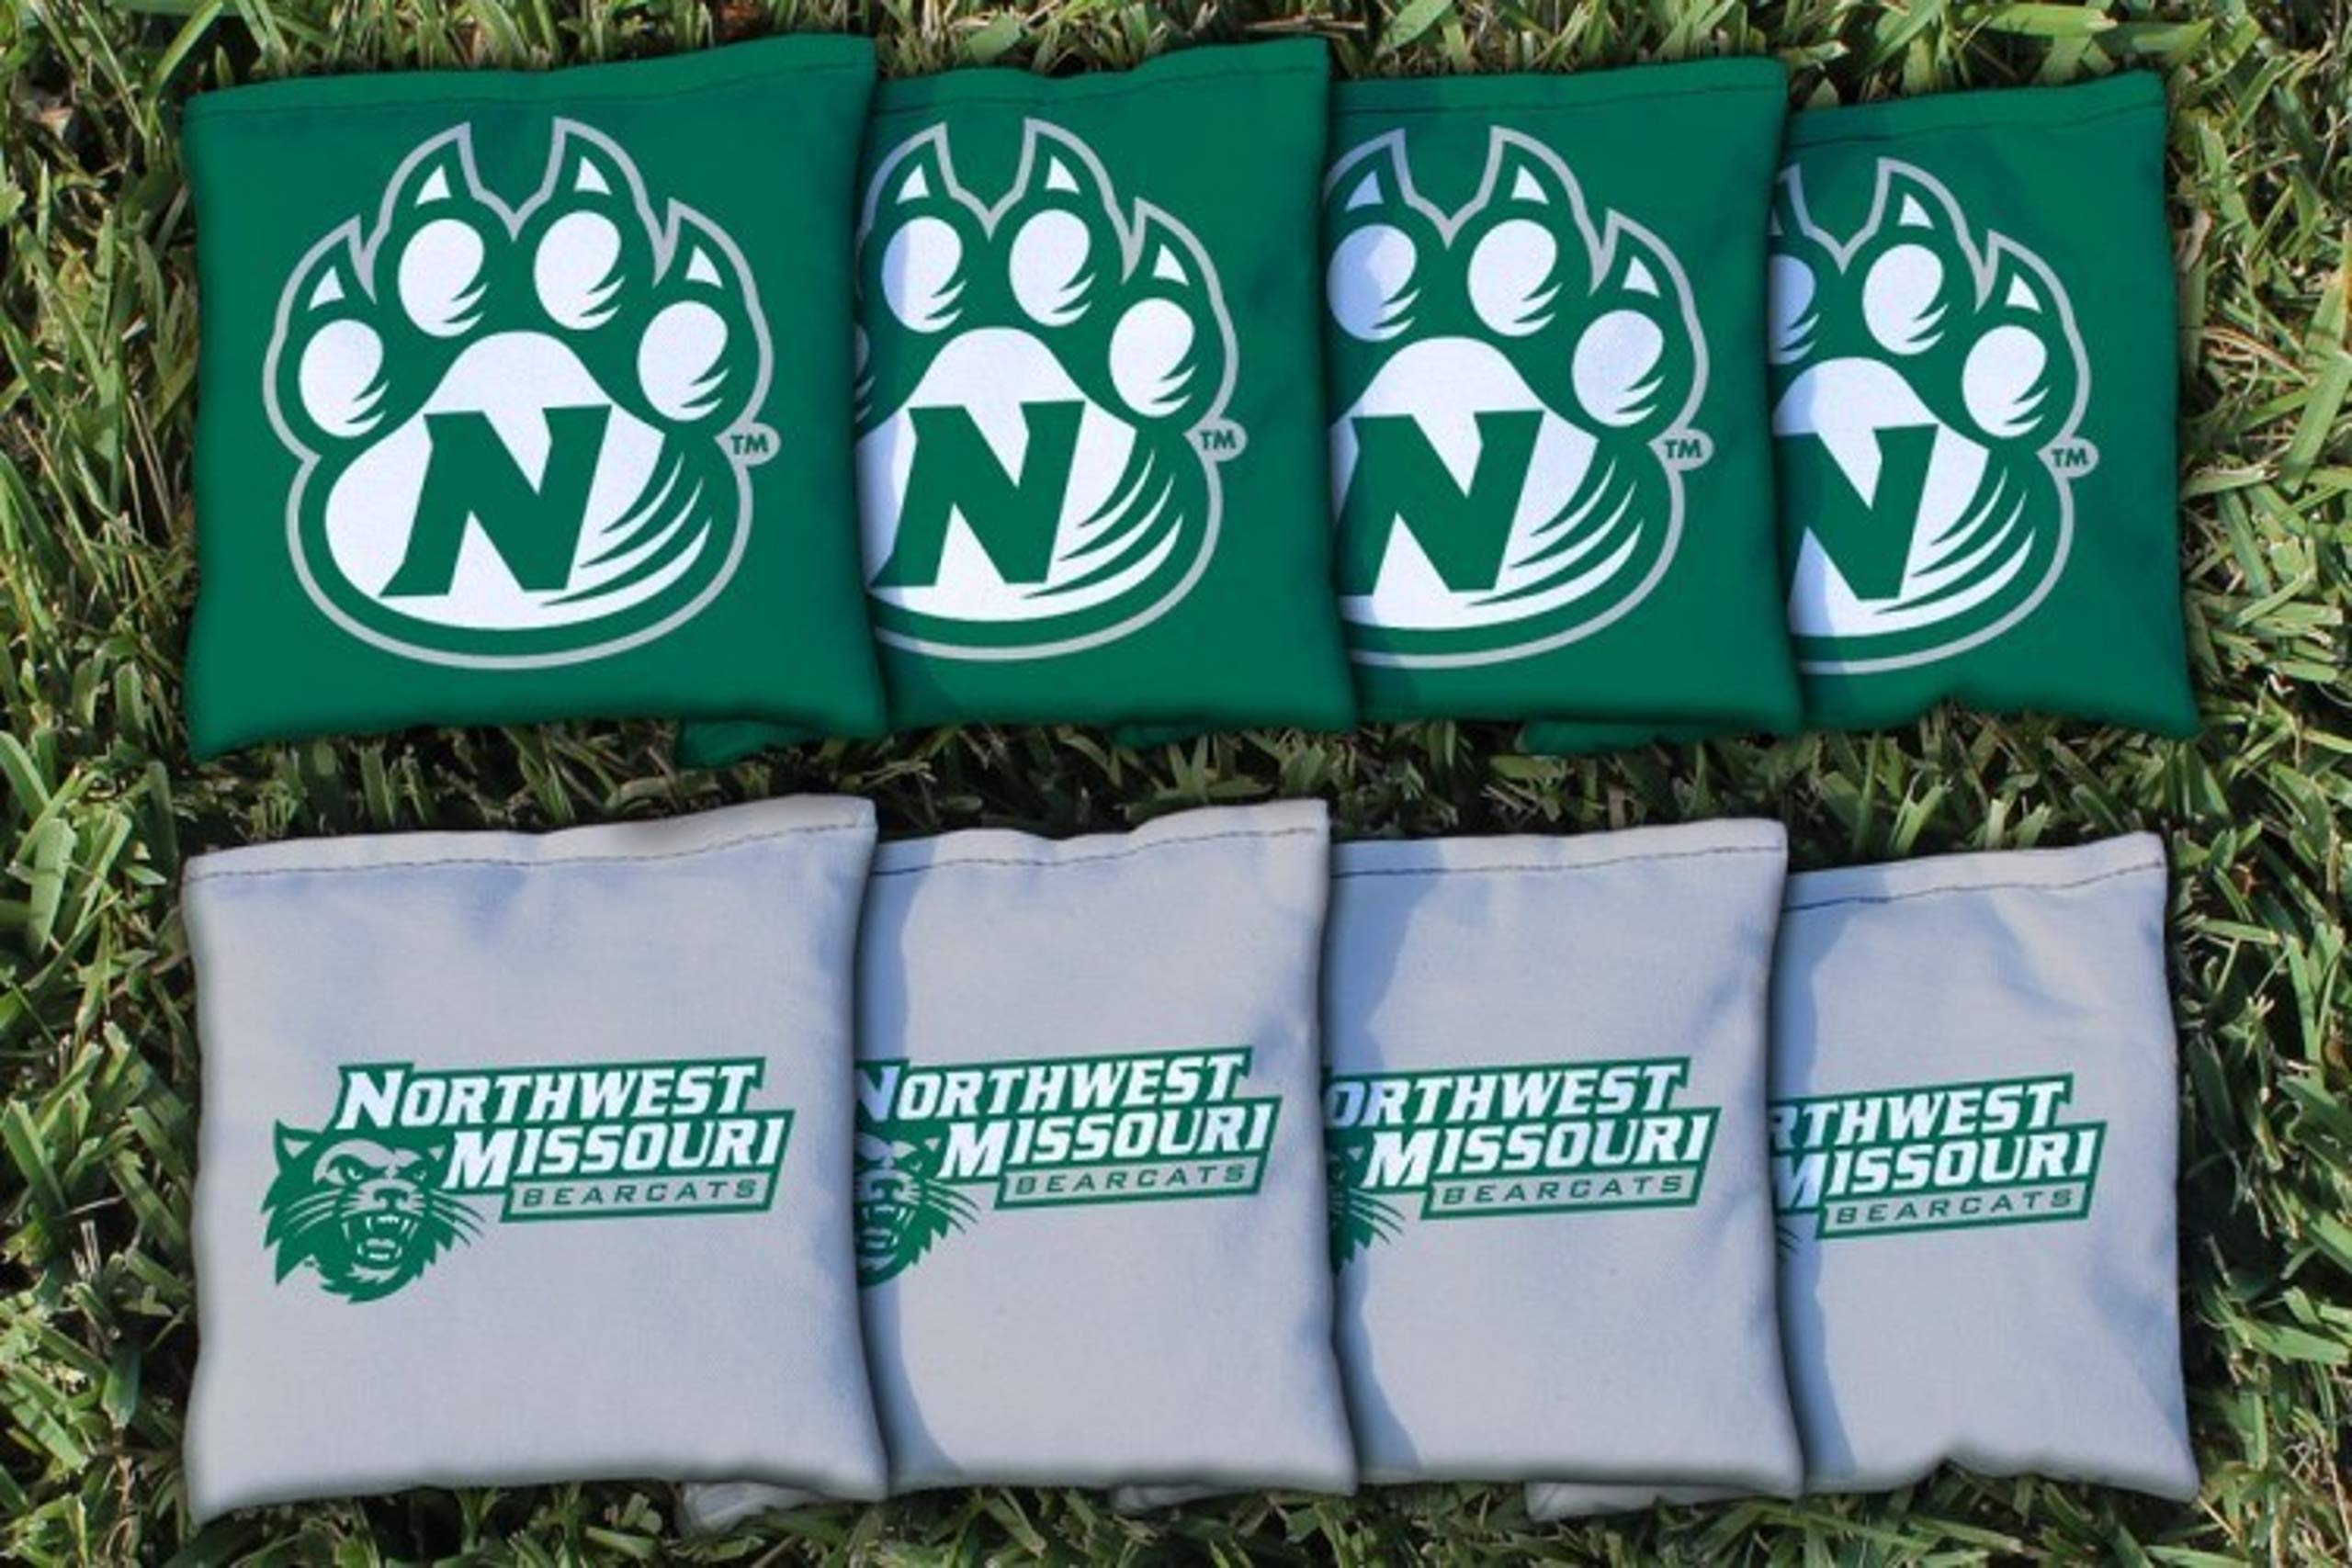 Victory Tailgate NCAA Collegiate Regulation Cornhole Game Bag Set (8 Bags Included, Corn-Filled) - Northwest Missouri State Bearcats by Victory Tailgate